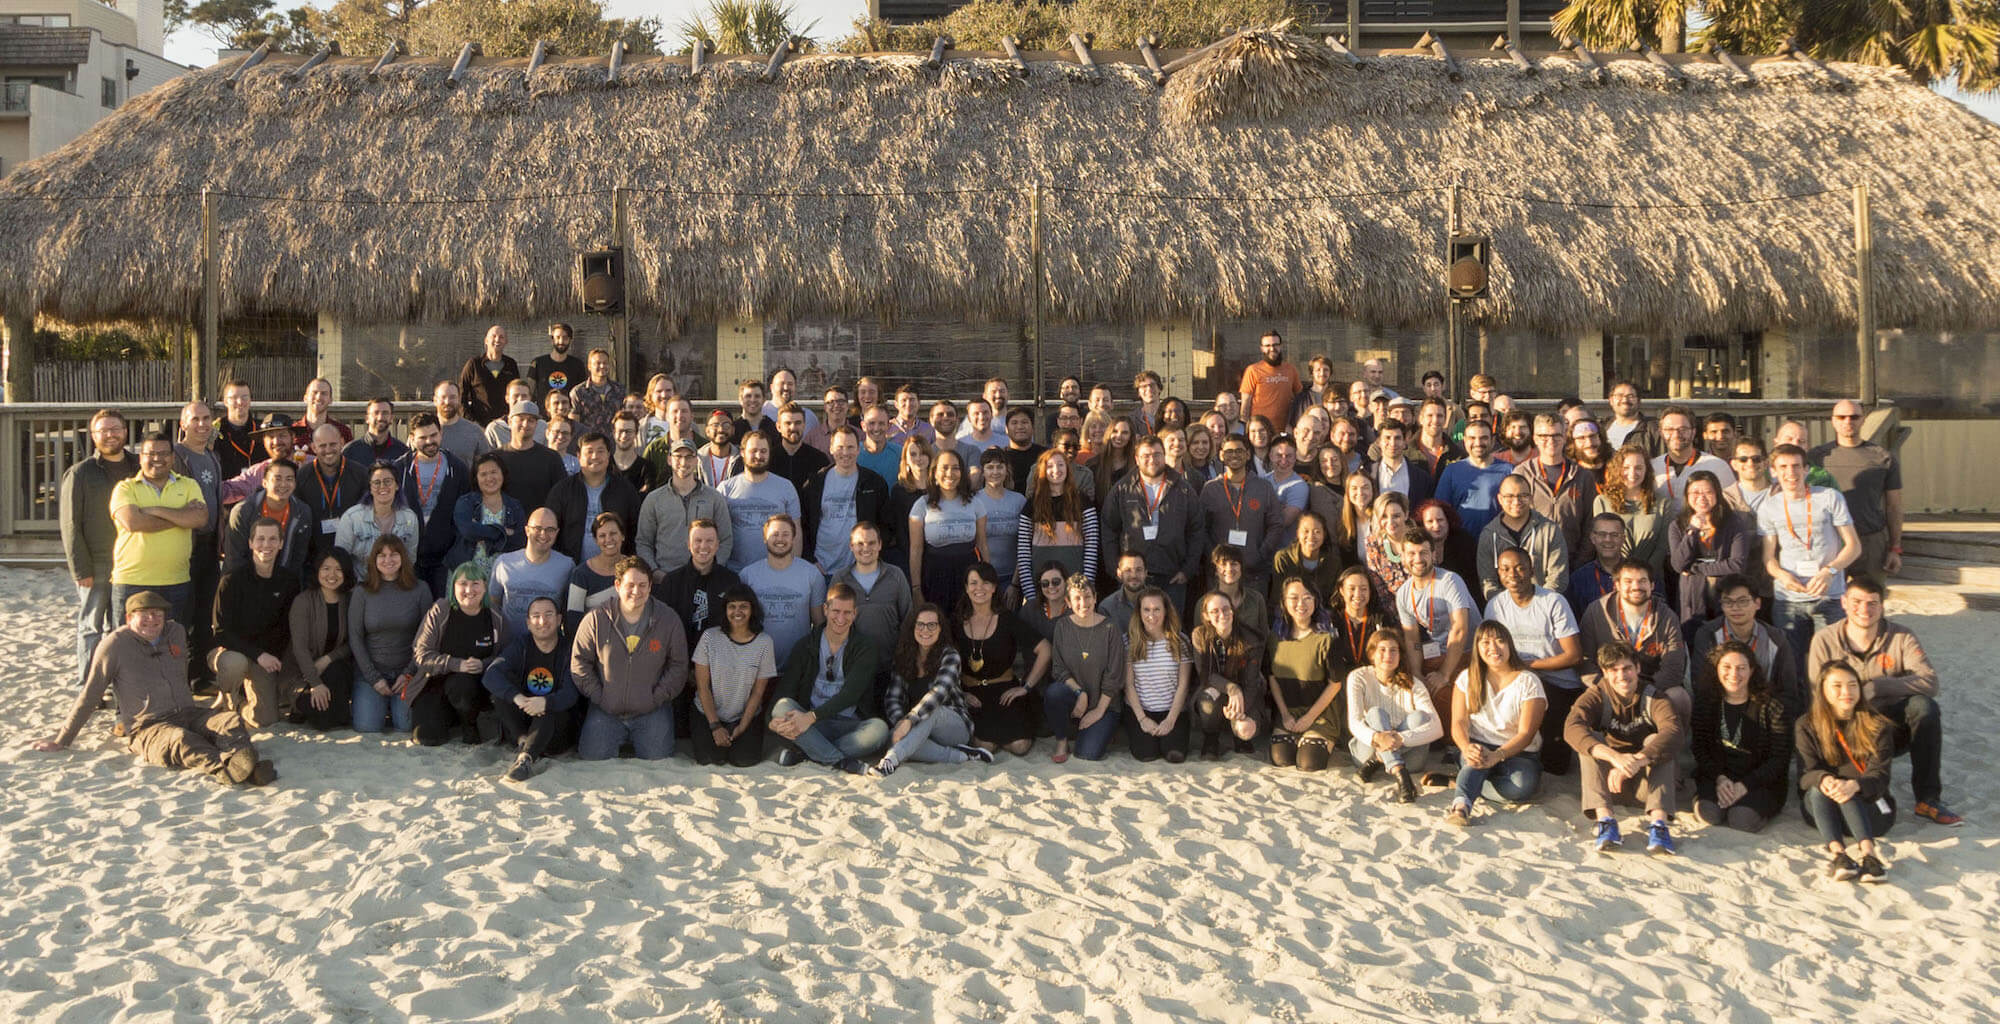 The Zapier team together at last, at our winter retreat.